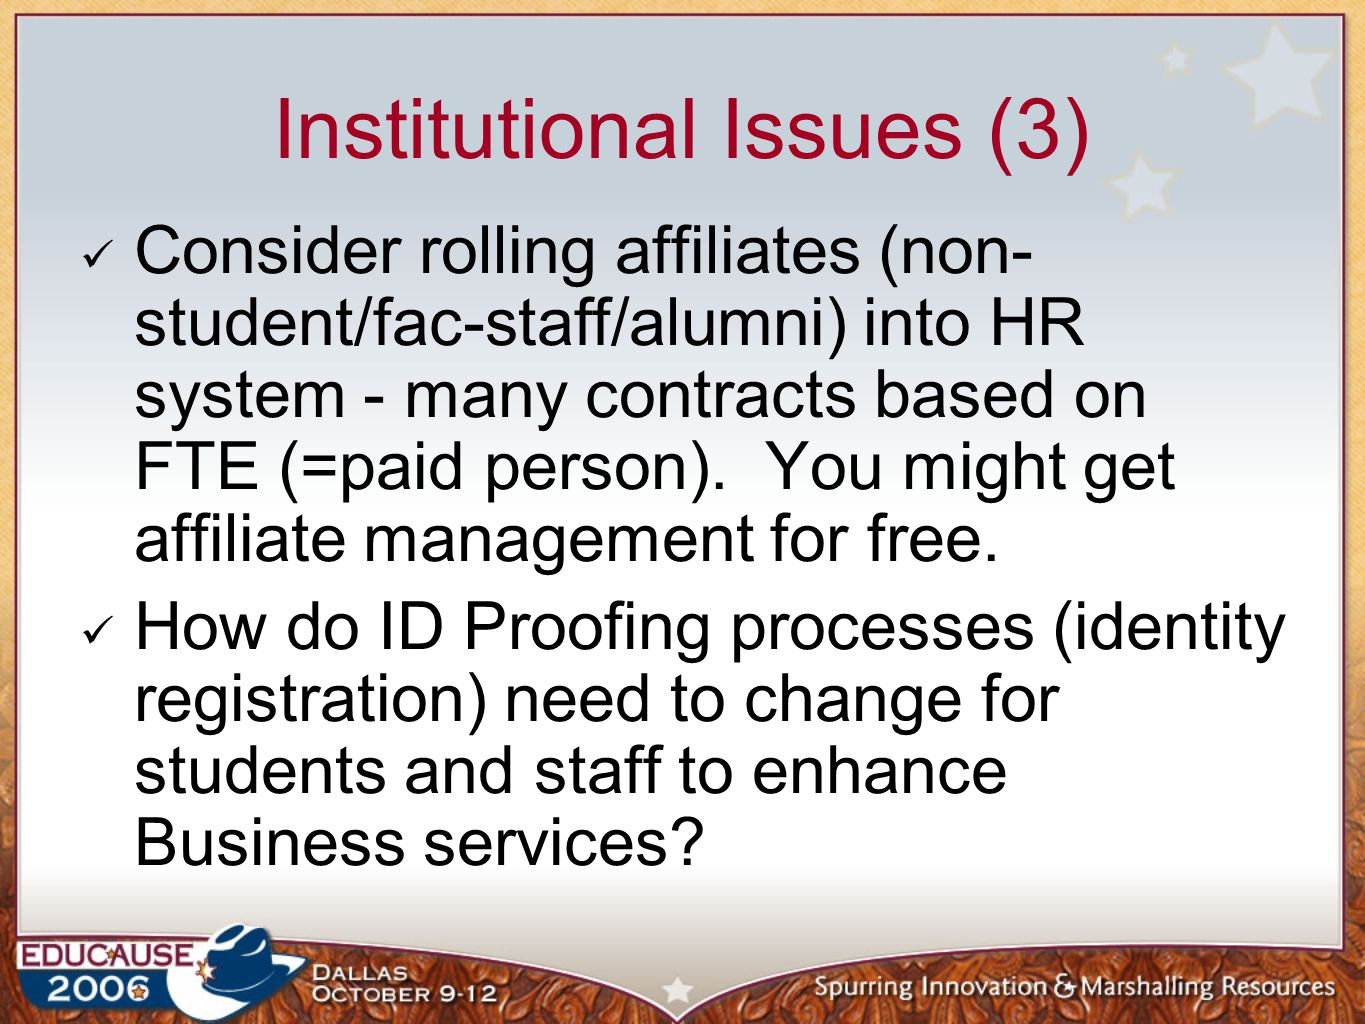 Institutional Issues (3) Consider rolling affiliates (non- student/fac-staff/alumni) into HR system - many contracts based on FTE (=paid person).